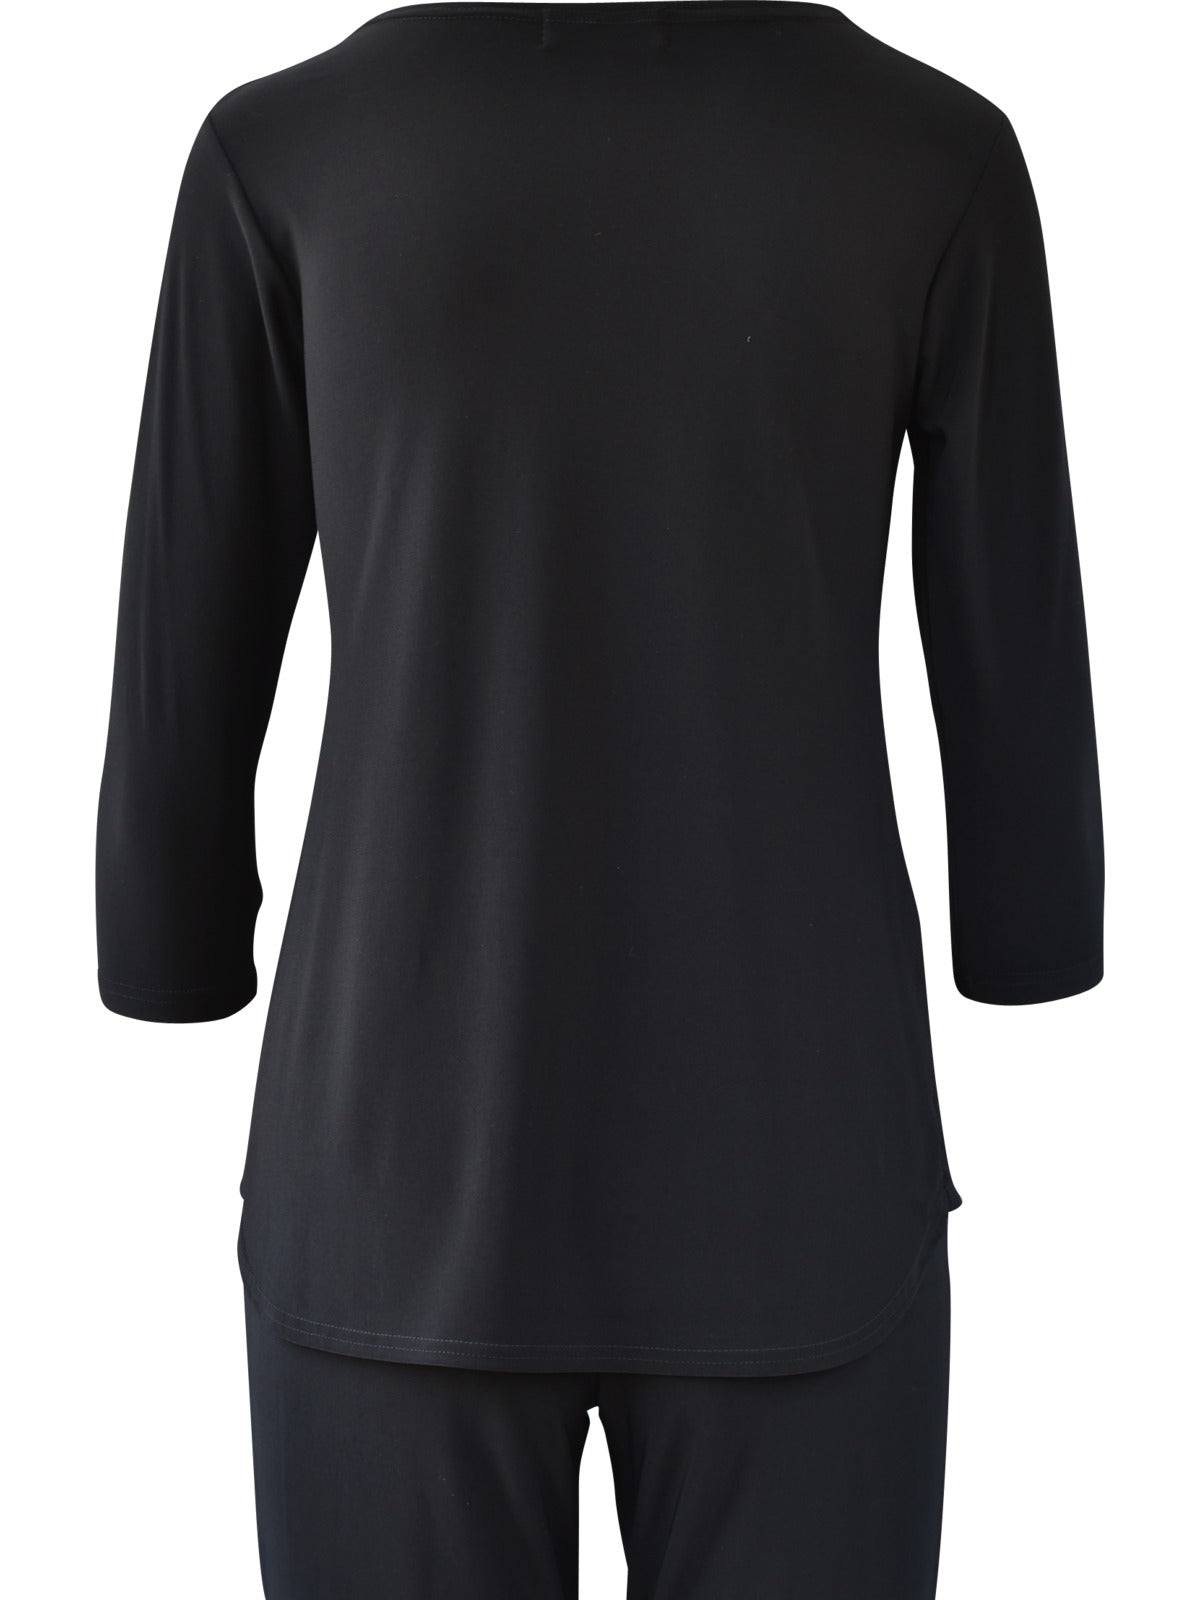 Sympli - Go To Classic T Relax - 3/4 Sleeve - Plus